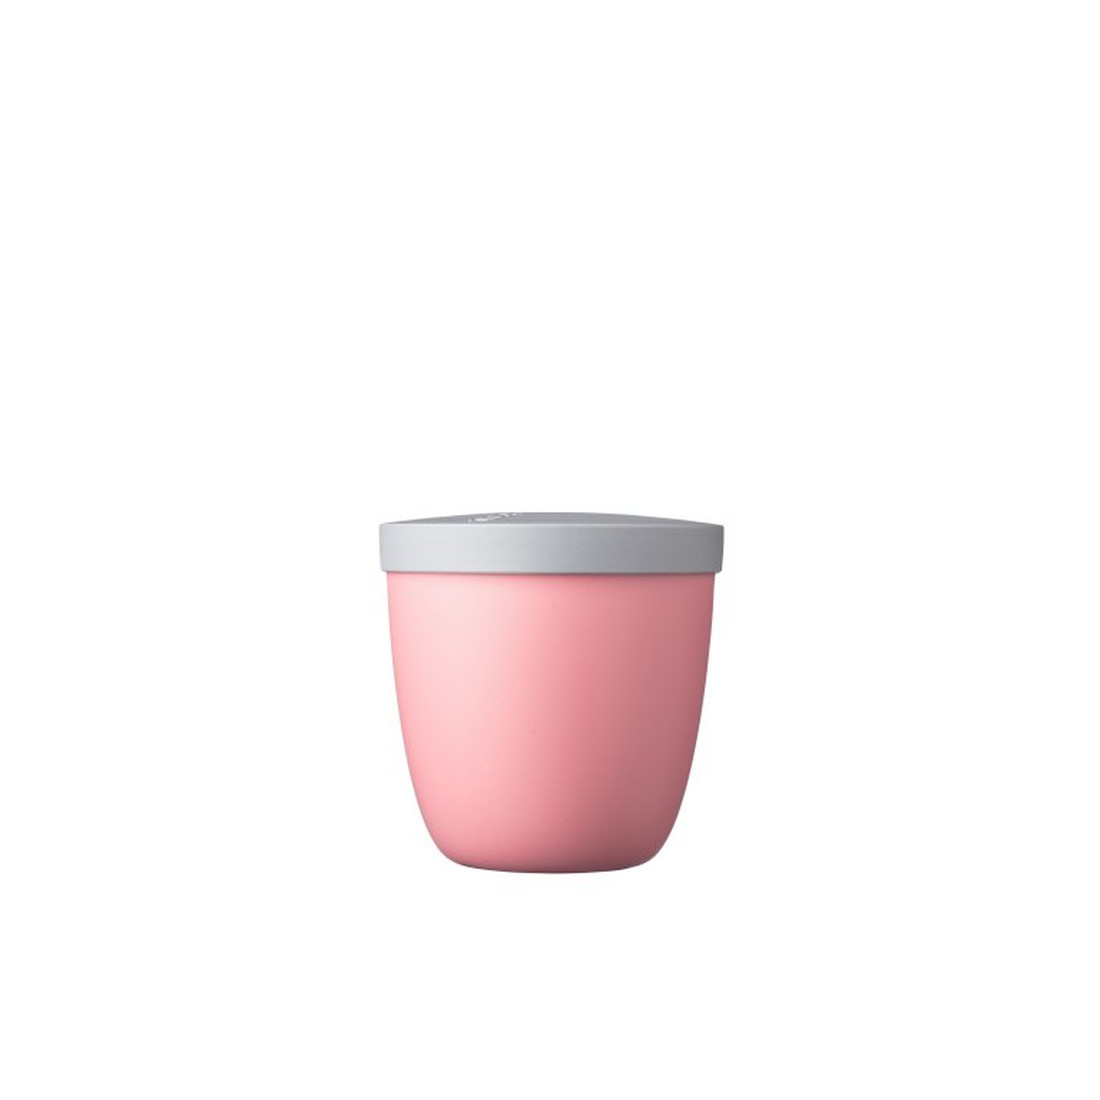 Snackpot Ellipse 500 ml - Nordic Pink by MEPAL